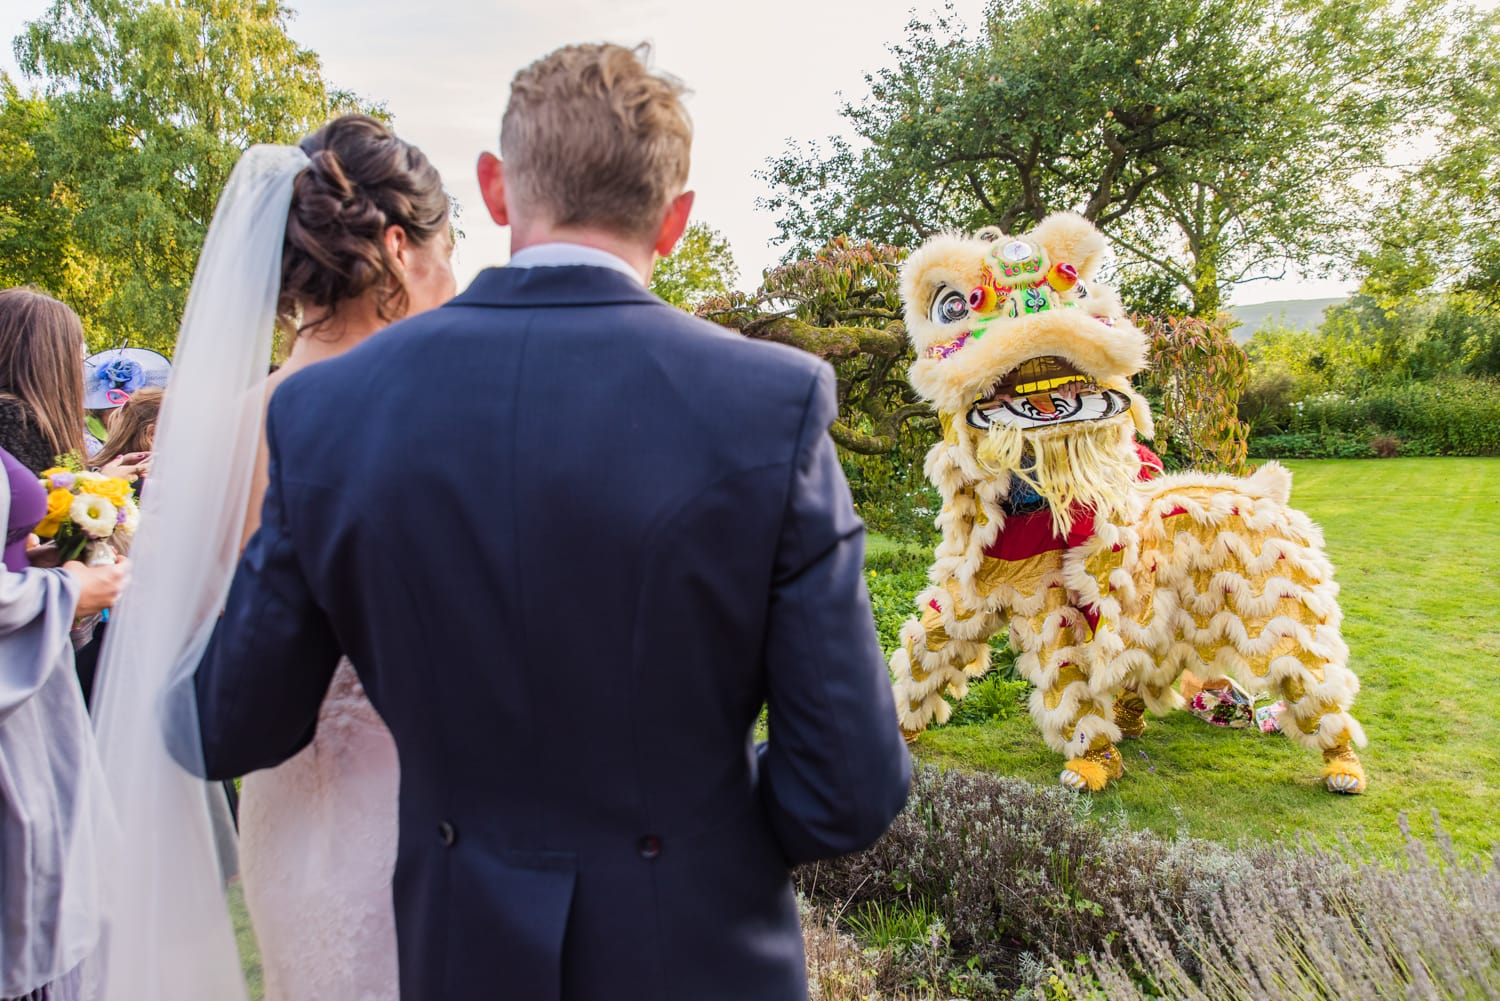 077-bride-groom-watching-lion-dance_1.jpg